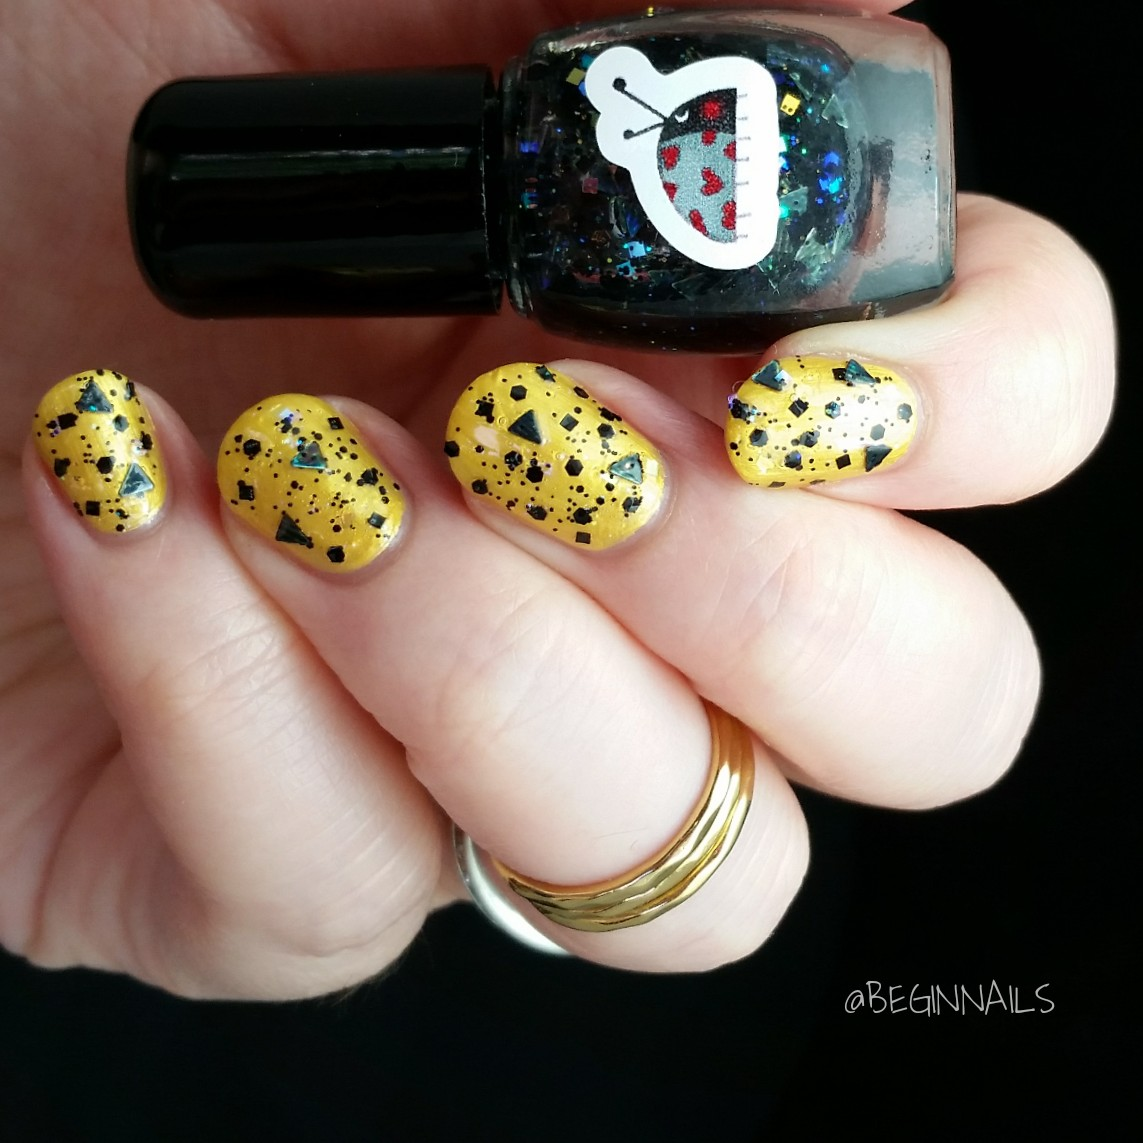 Let\'s Begin Nails: Ladybug Lacquer Halloween Polishes Swatch and Review